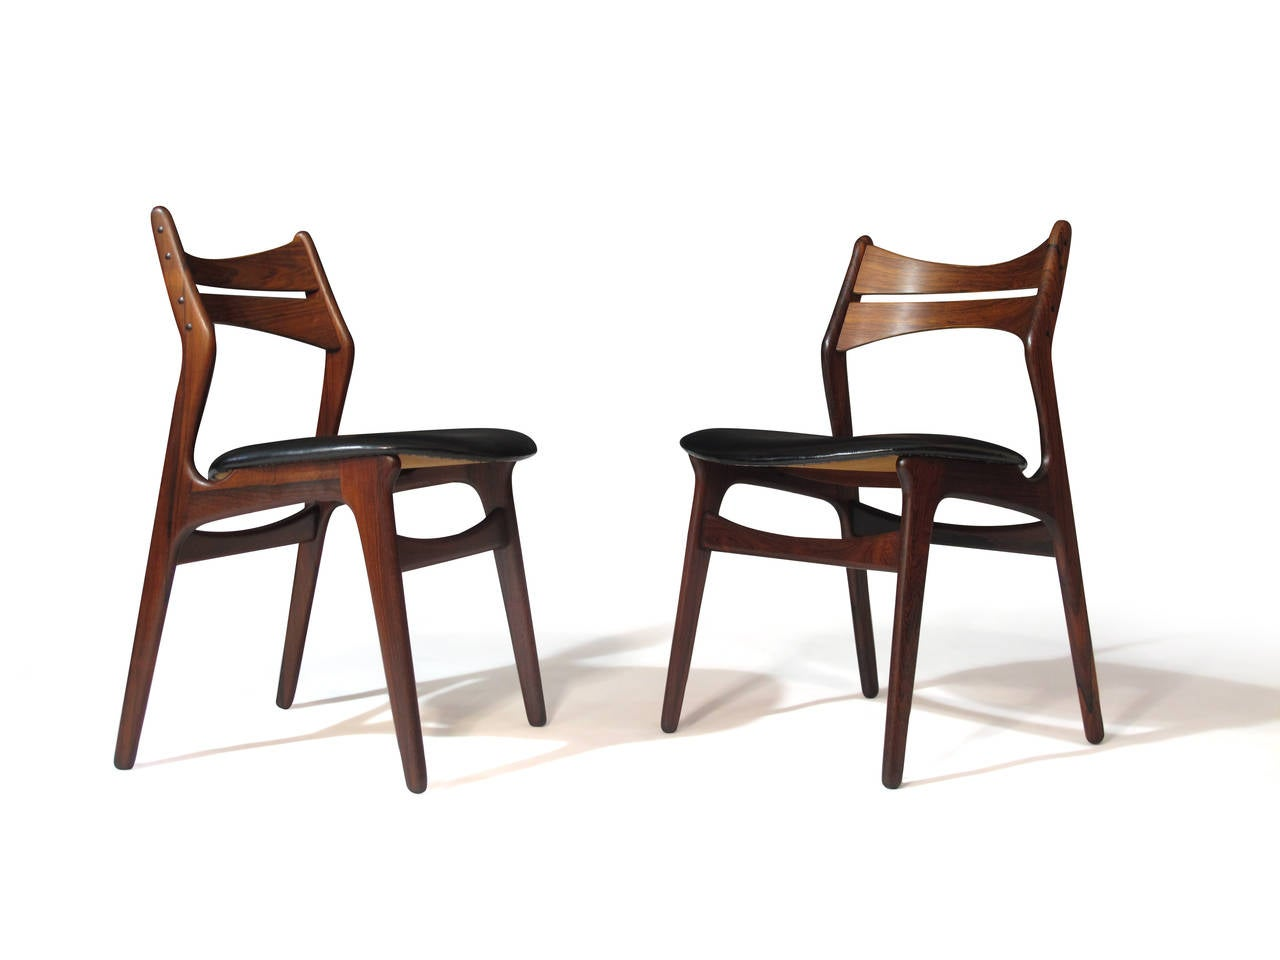 erik buck chairs high chair bag six rosewood danish dining 12 available